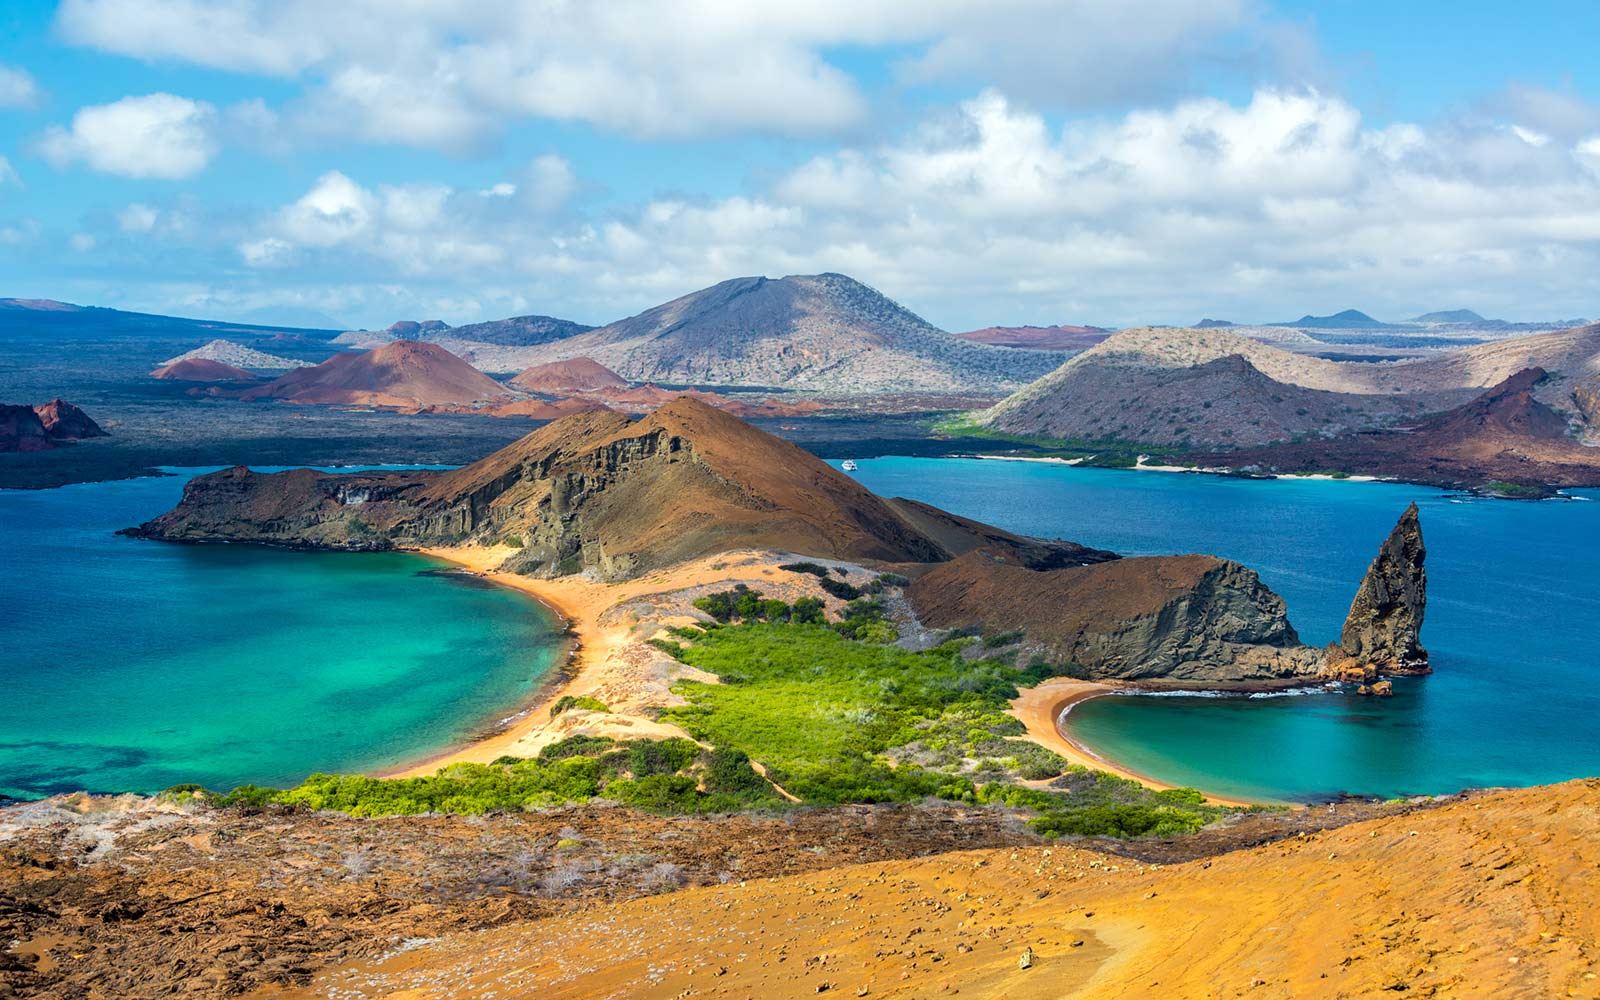 The mangrove areas of the Galapagos archipelago have increased by 25% in the last ten years